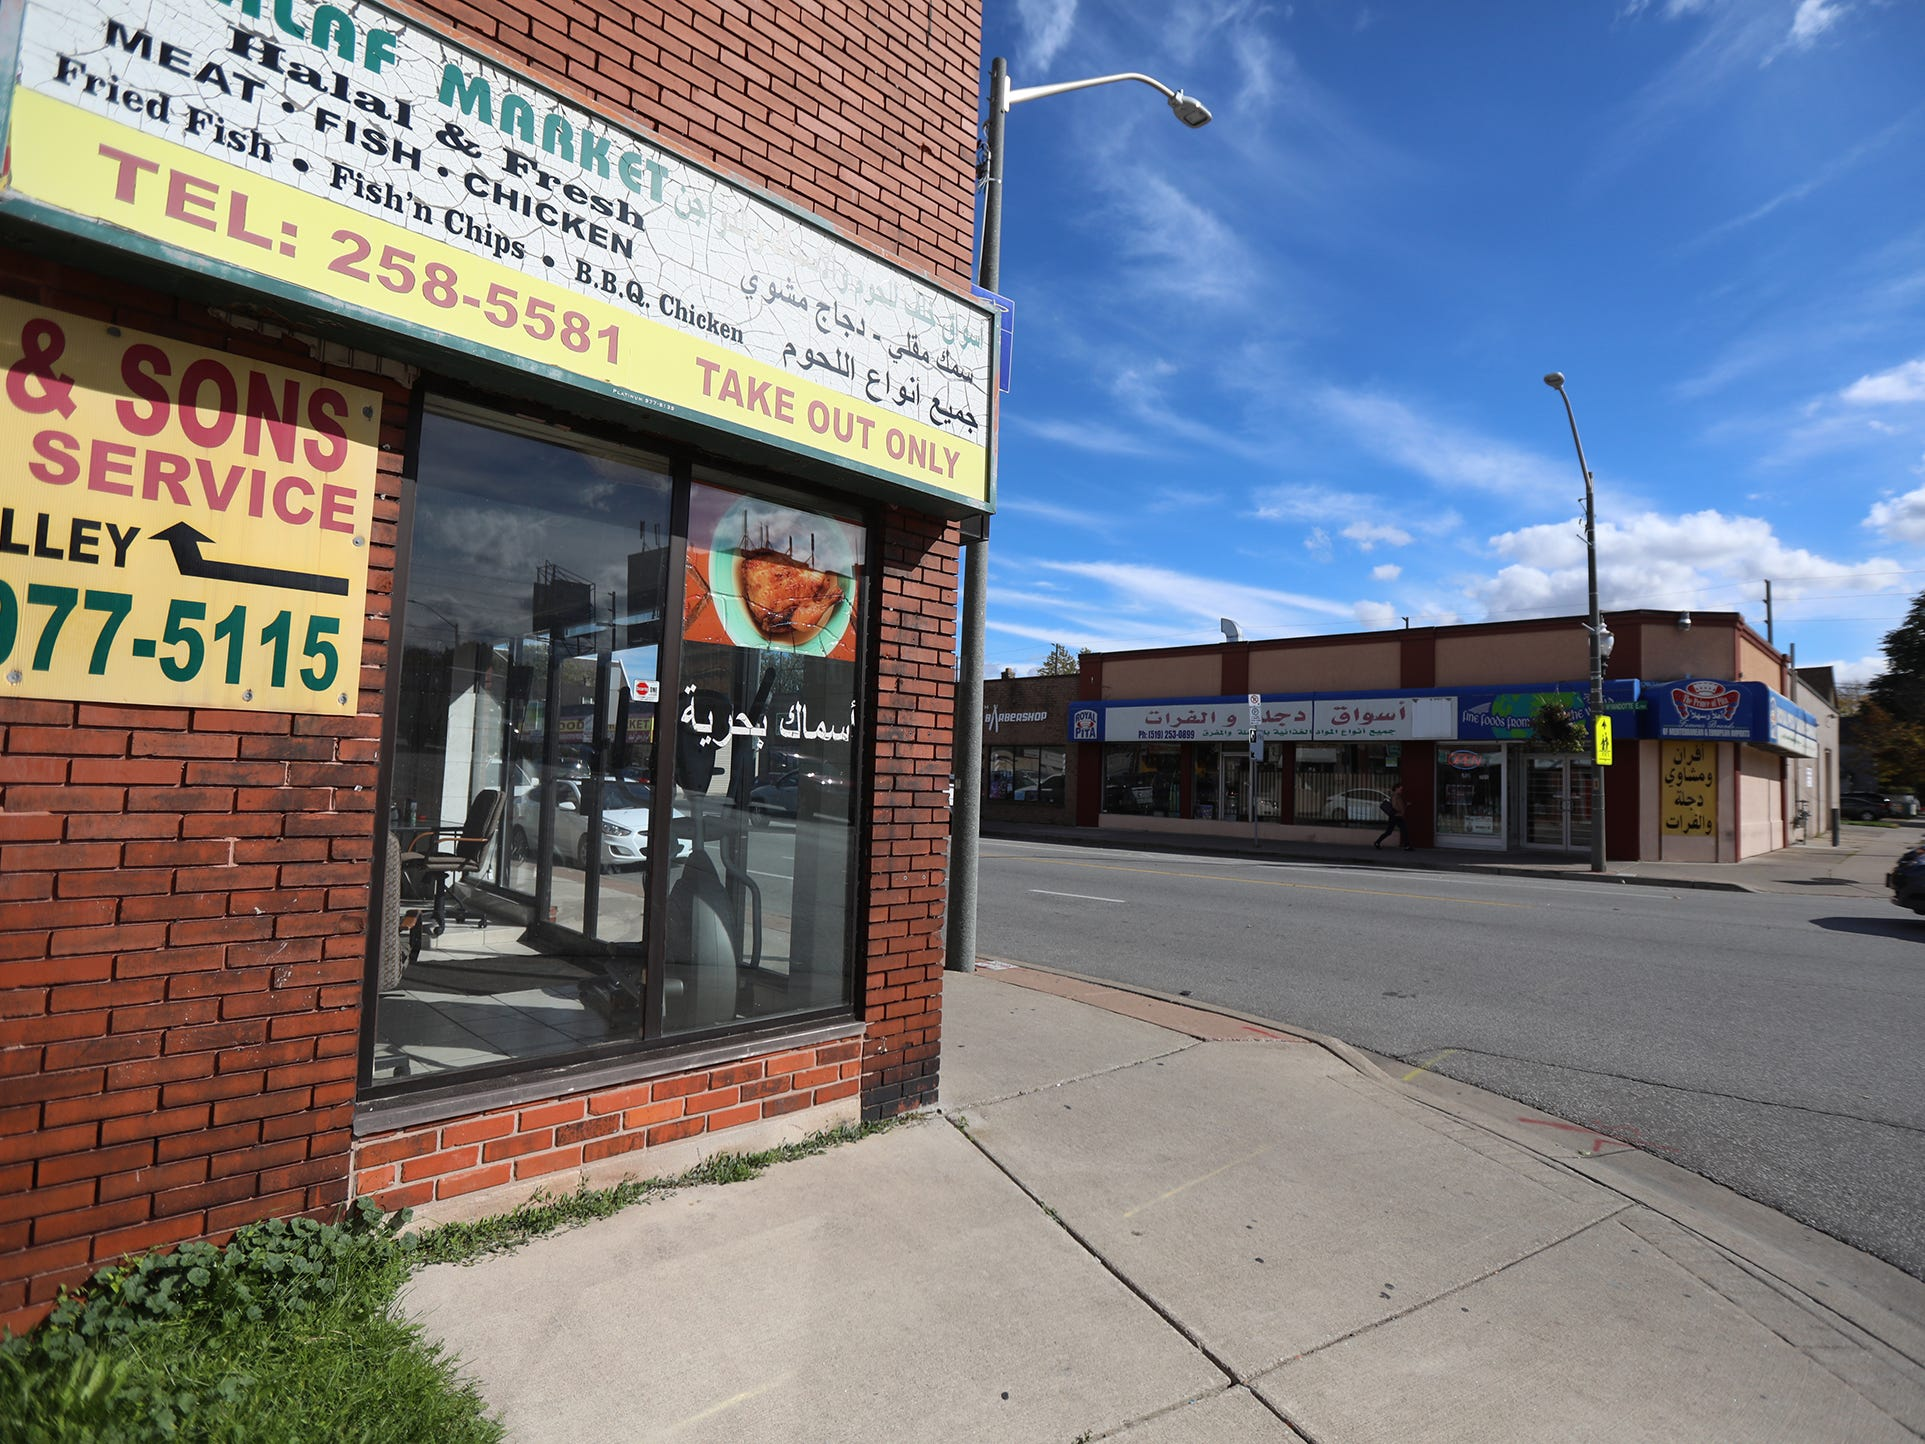 Windsor has a large Arabic speaking community, one area on Wynadotte St. E has a stretch of stores catering to that particular community,